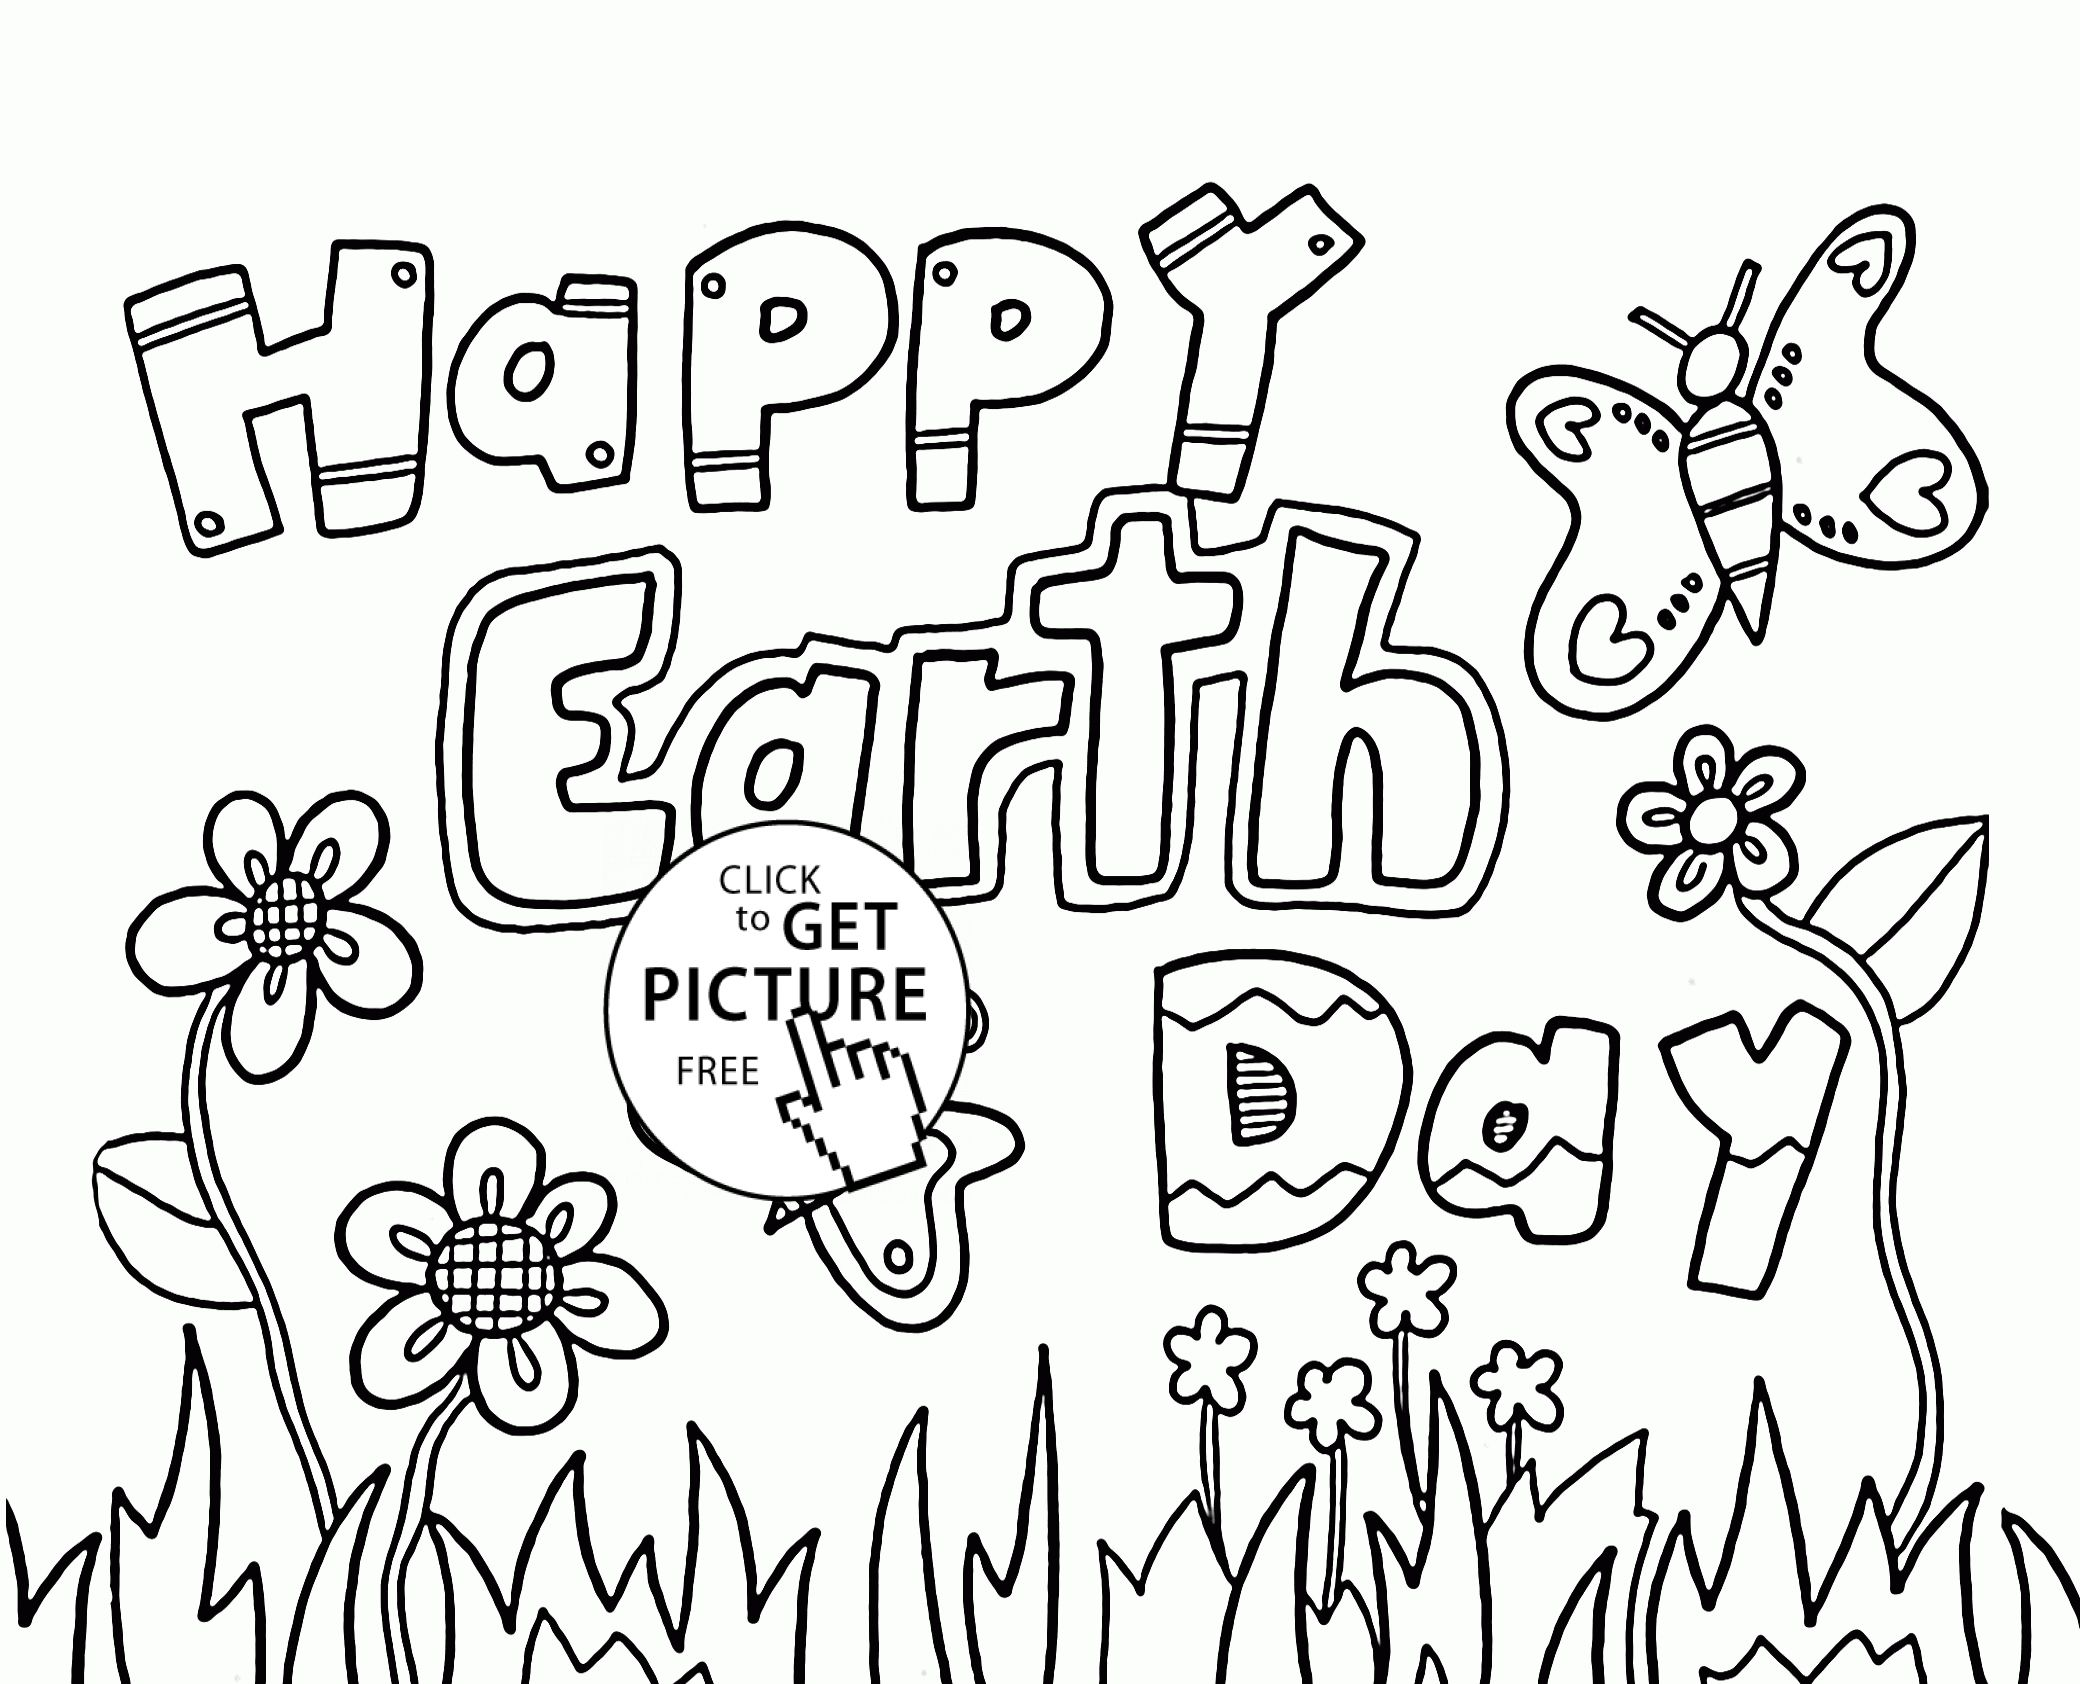 Mother Earth Coloring Pages Download In 2020 Earth Day Coloring Pages Earth Coloring Pages Earth Day Activities